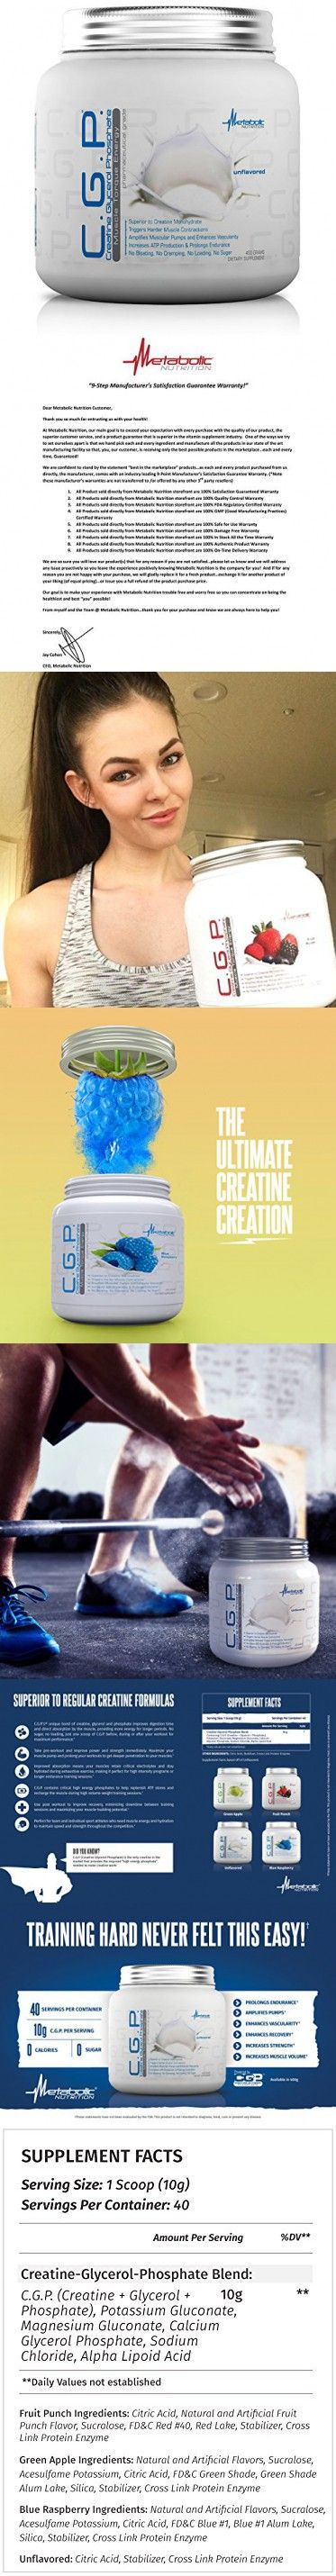 Metabolic Nutrition, CGP, Creatine Glycerol Phosphate, 100% Micronized Creatine Powder, Pre Intra Post Workout Supplement, Unflavored, 400 grams (40 servings)